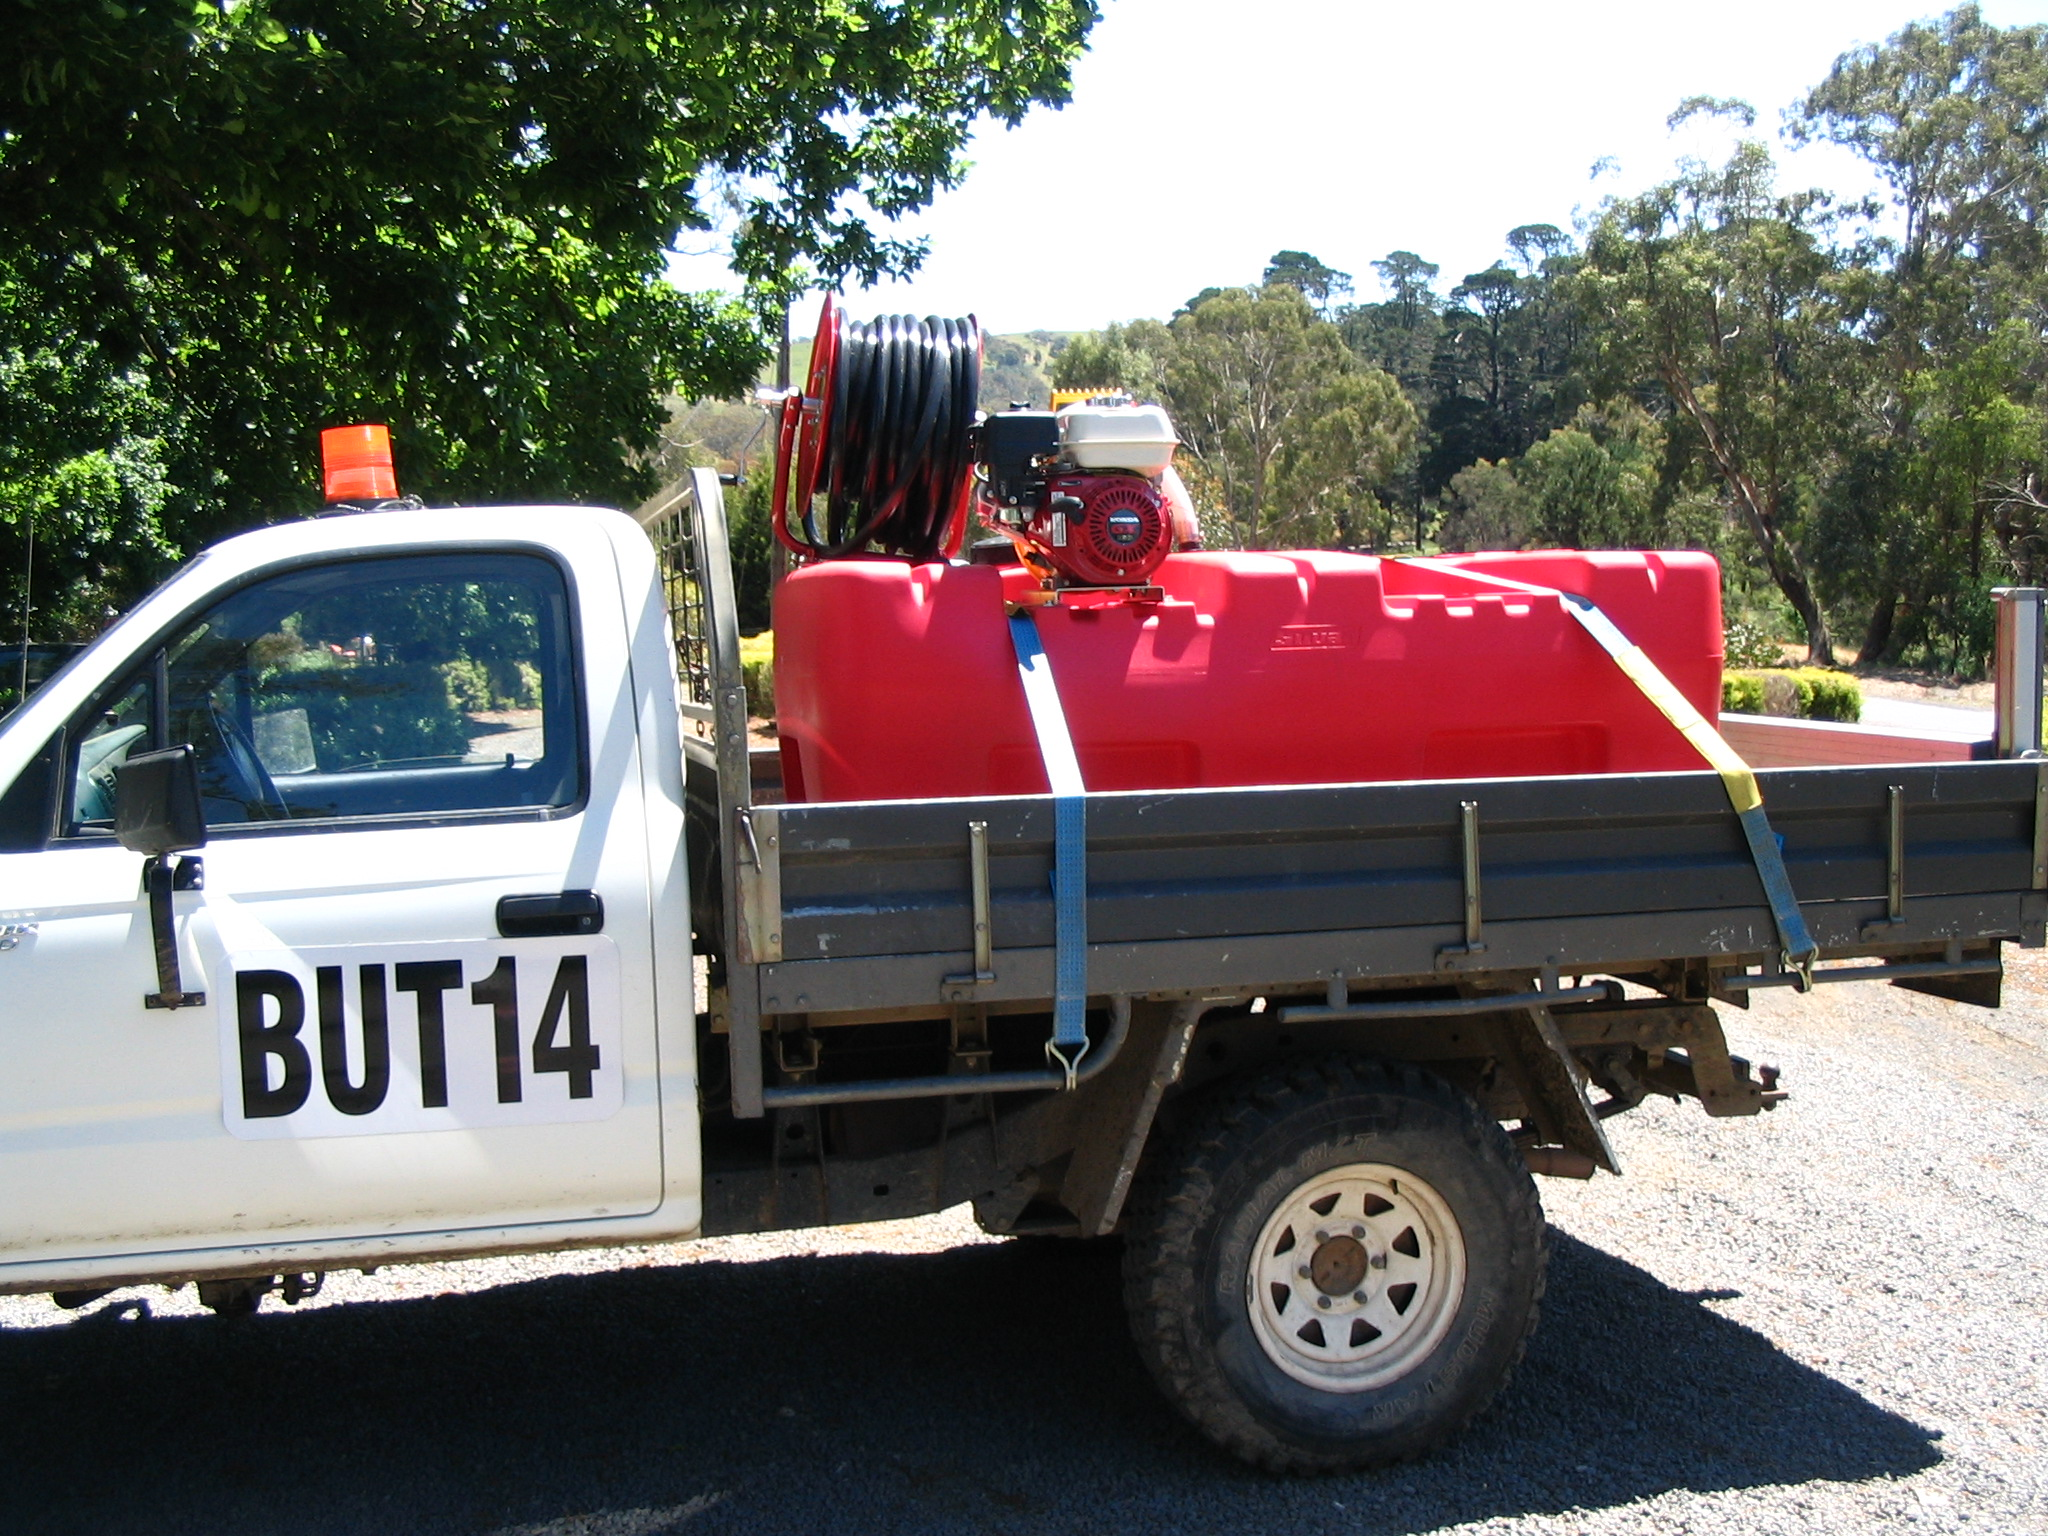 A private firefighting slip-on unit